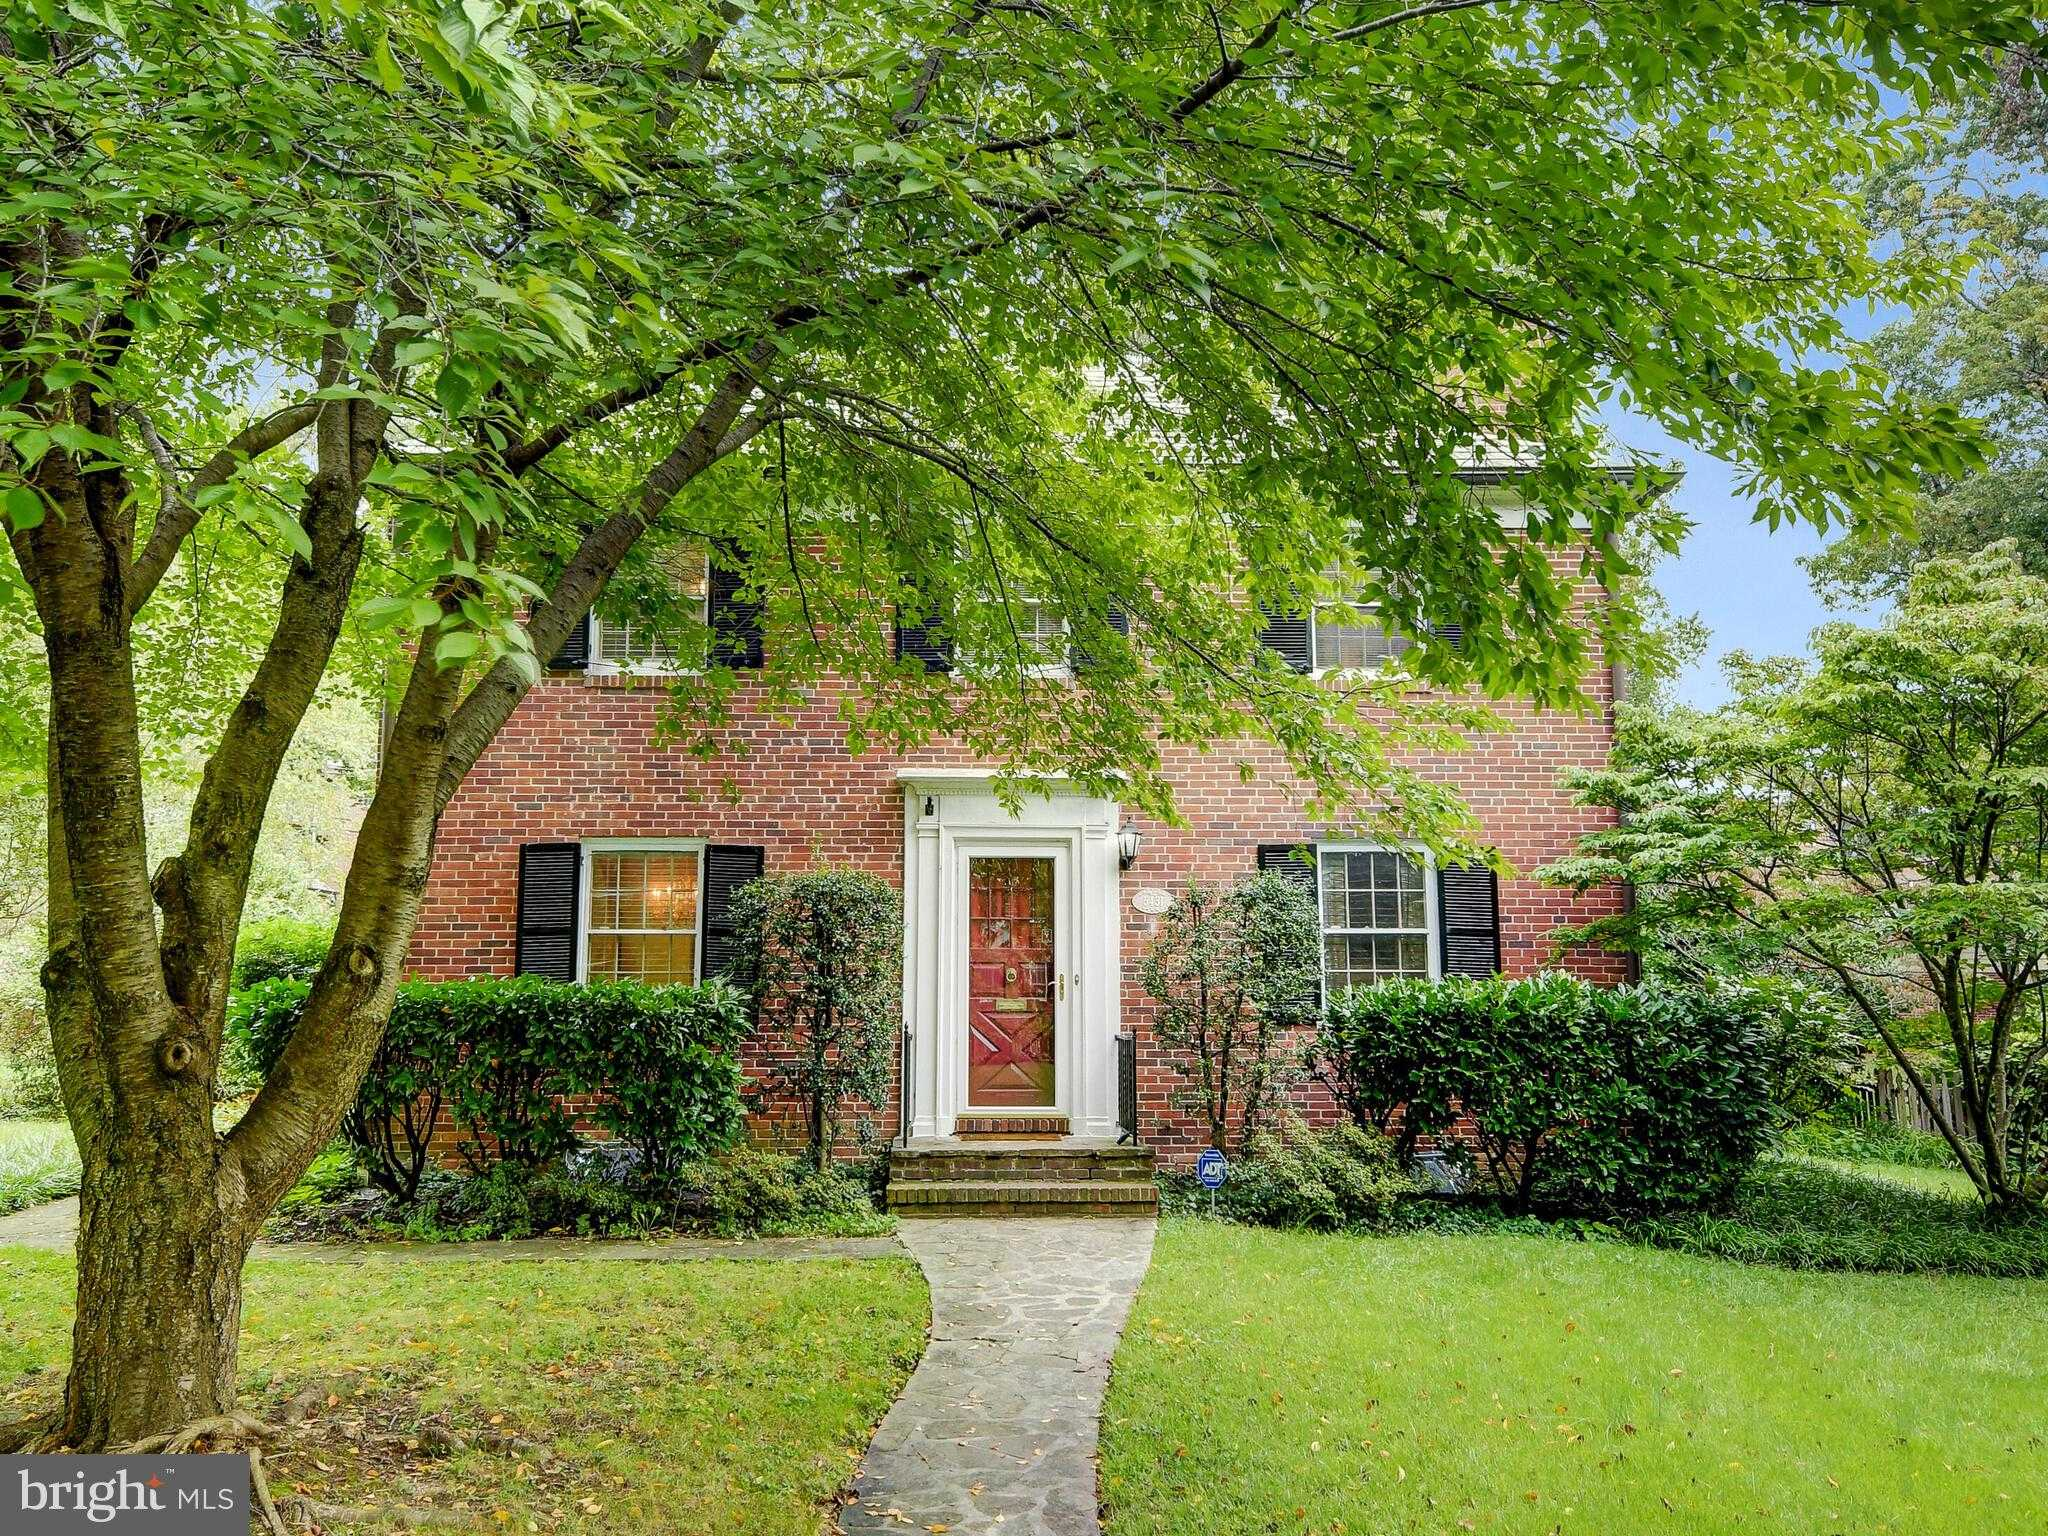 $375,000 - 3Br/2Ba -  for Sale in Homeland, Baltimore